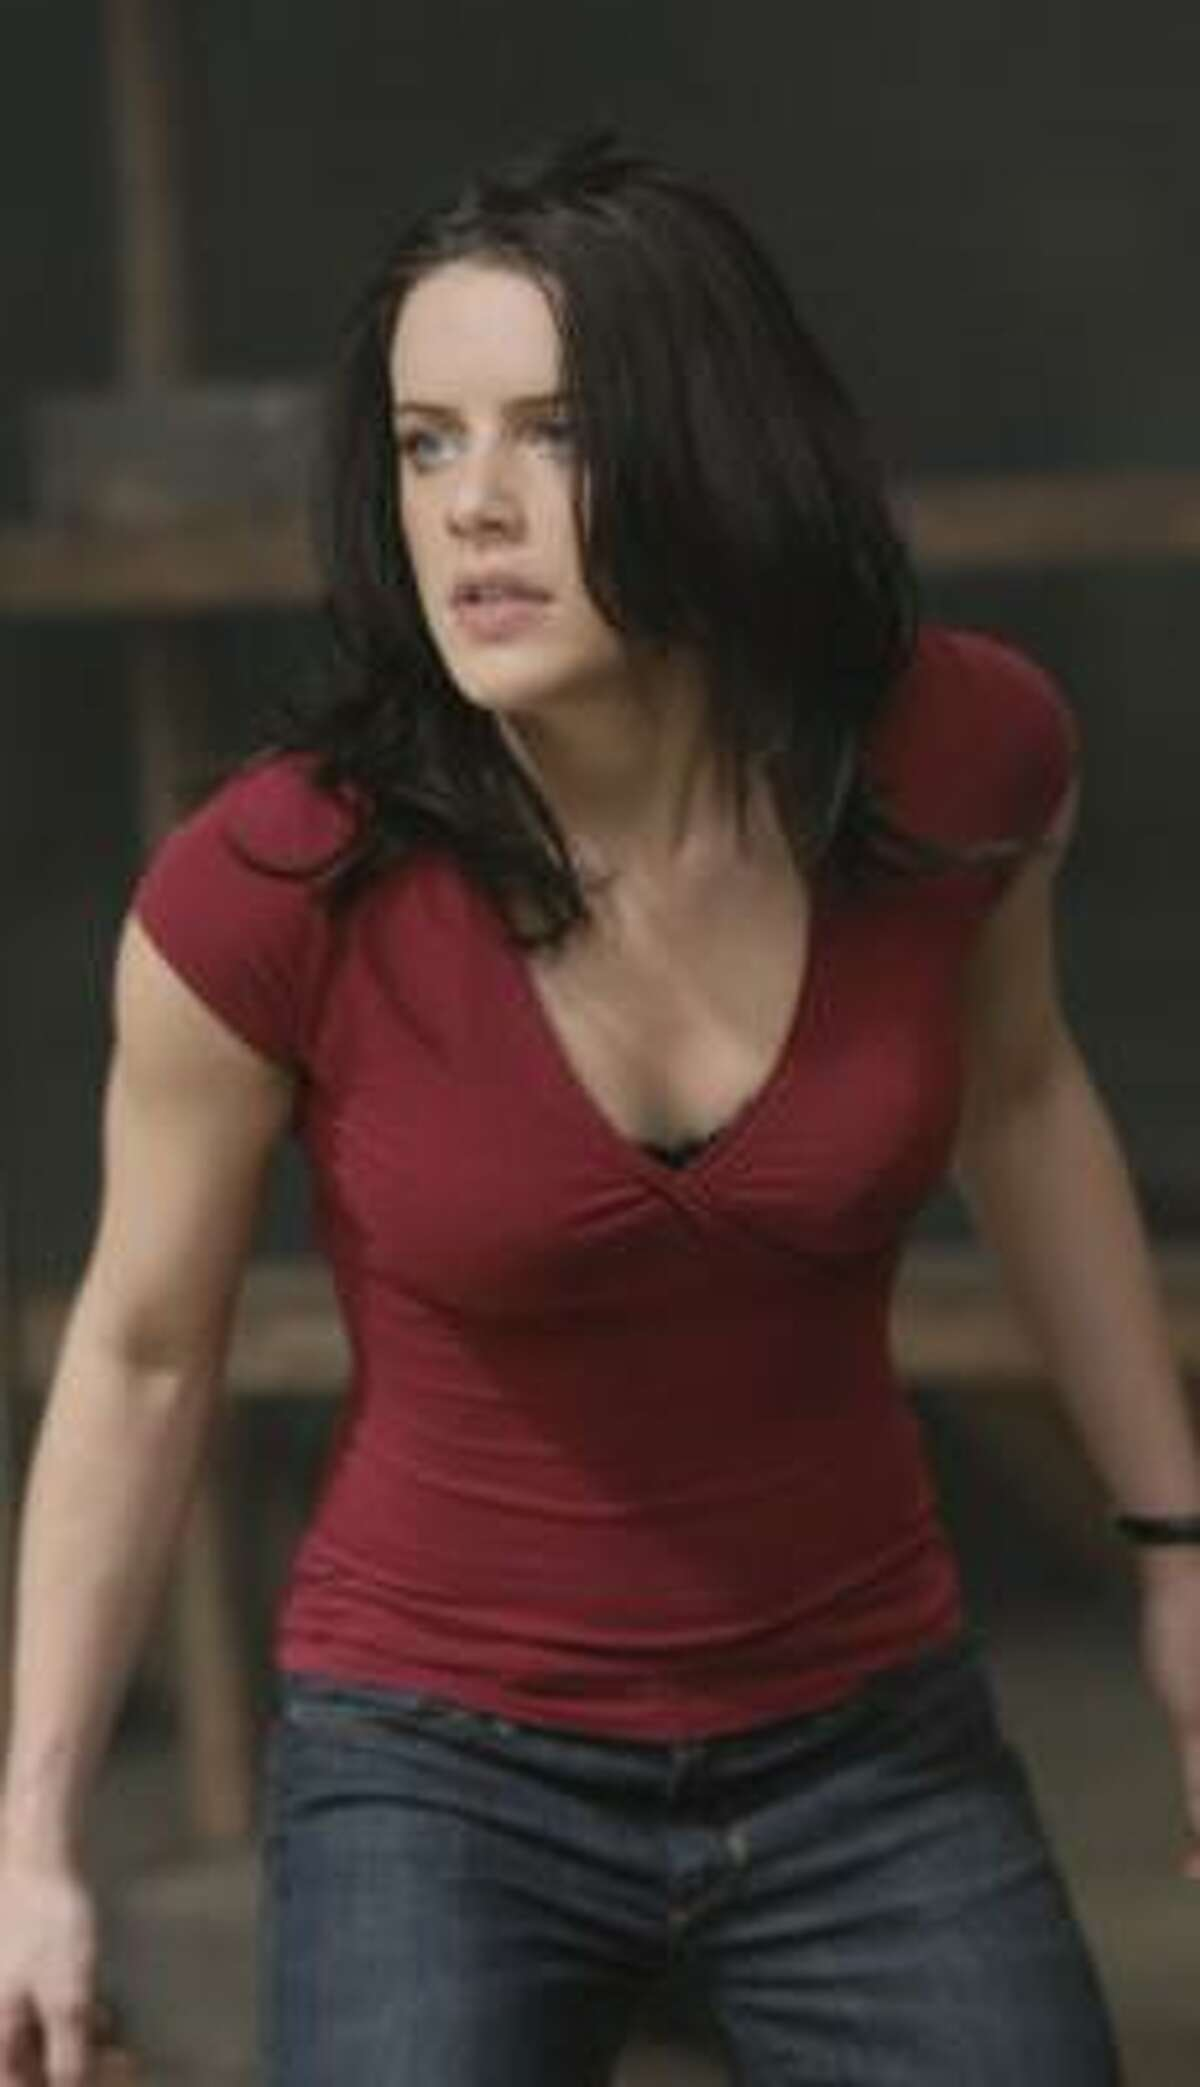 Michelle Ryan stars as Jaime Sommers in an updated version of Bionic Woman.